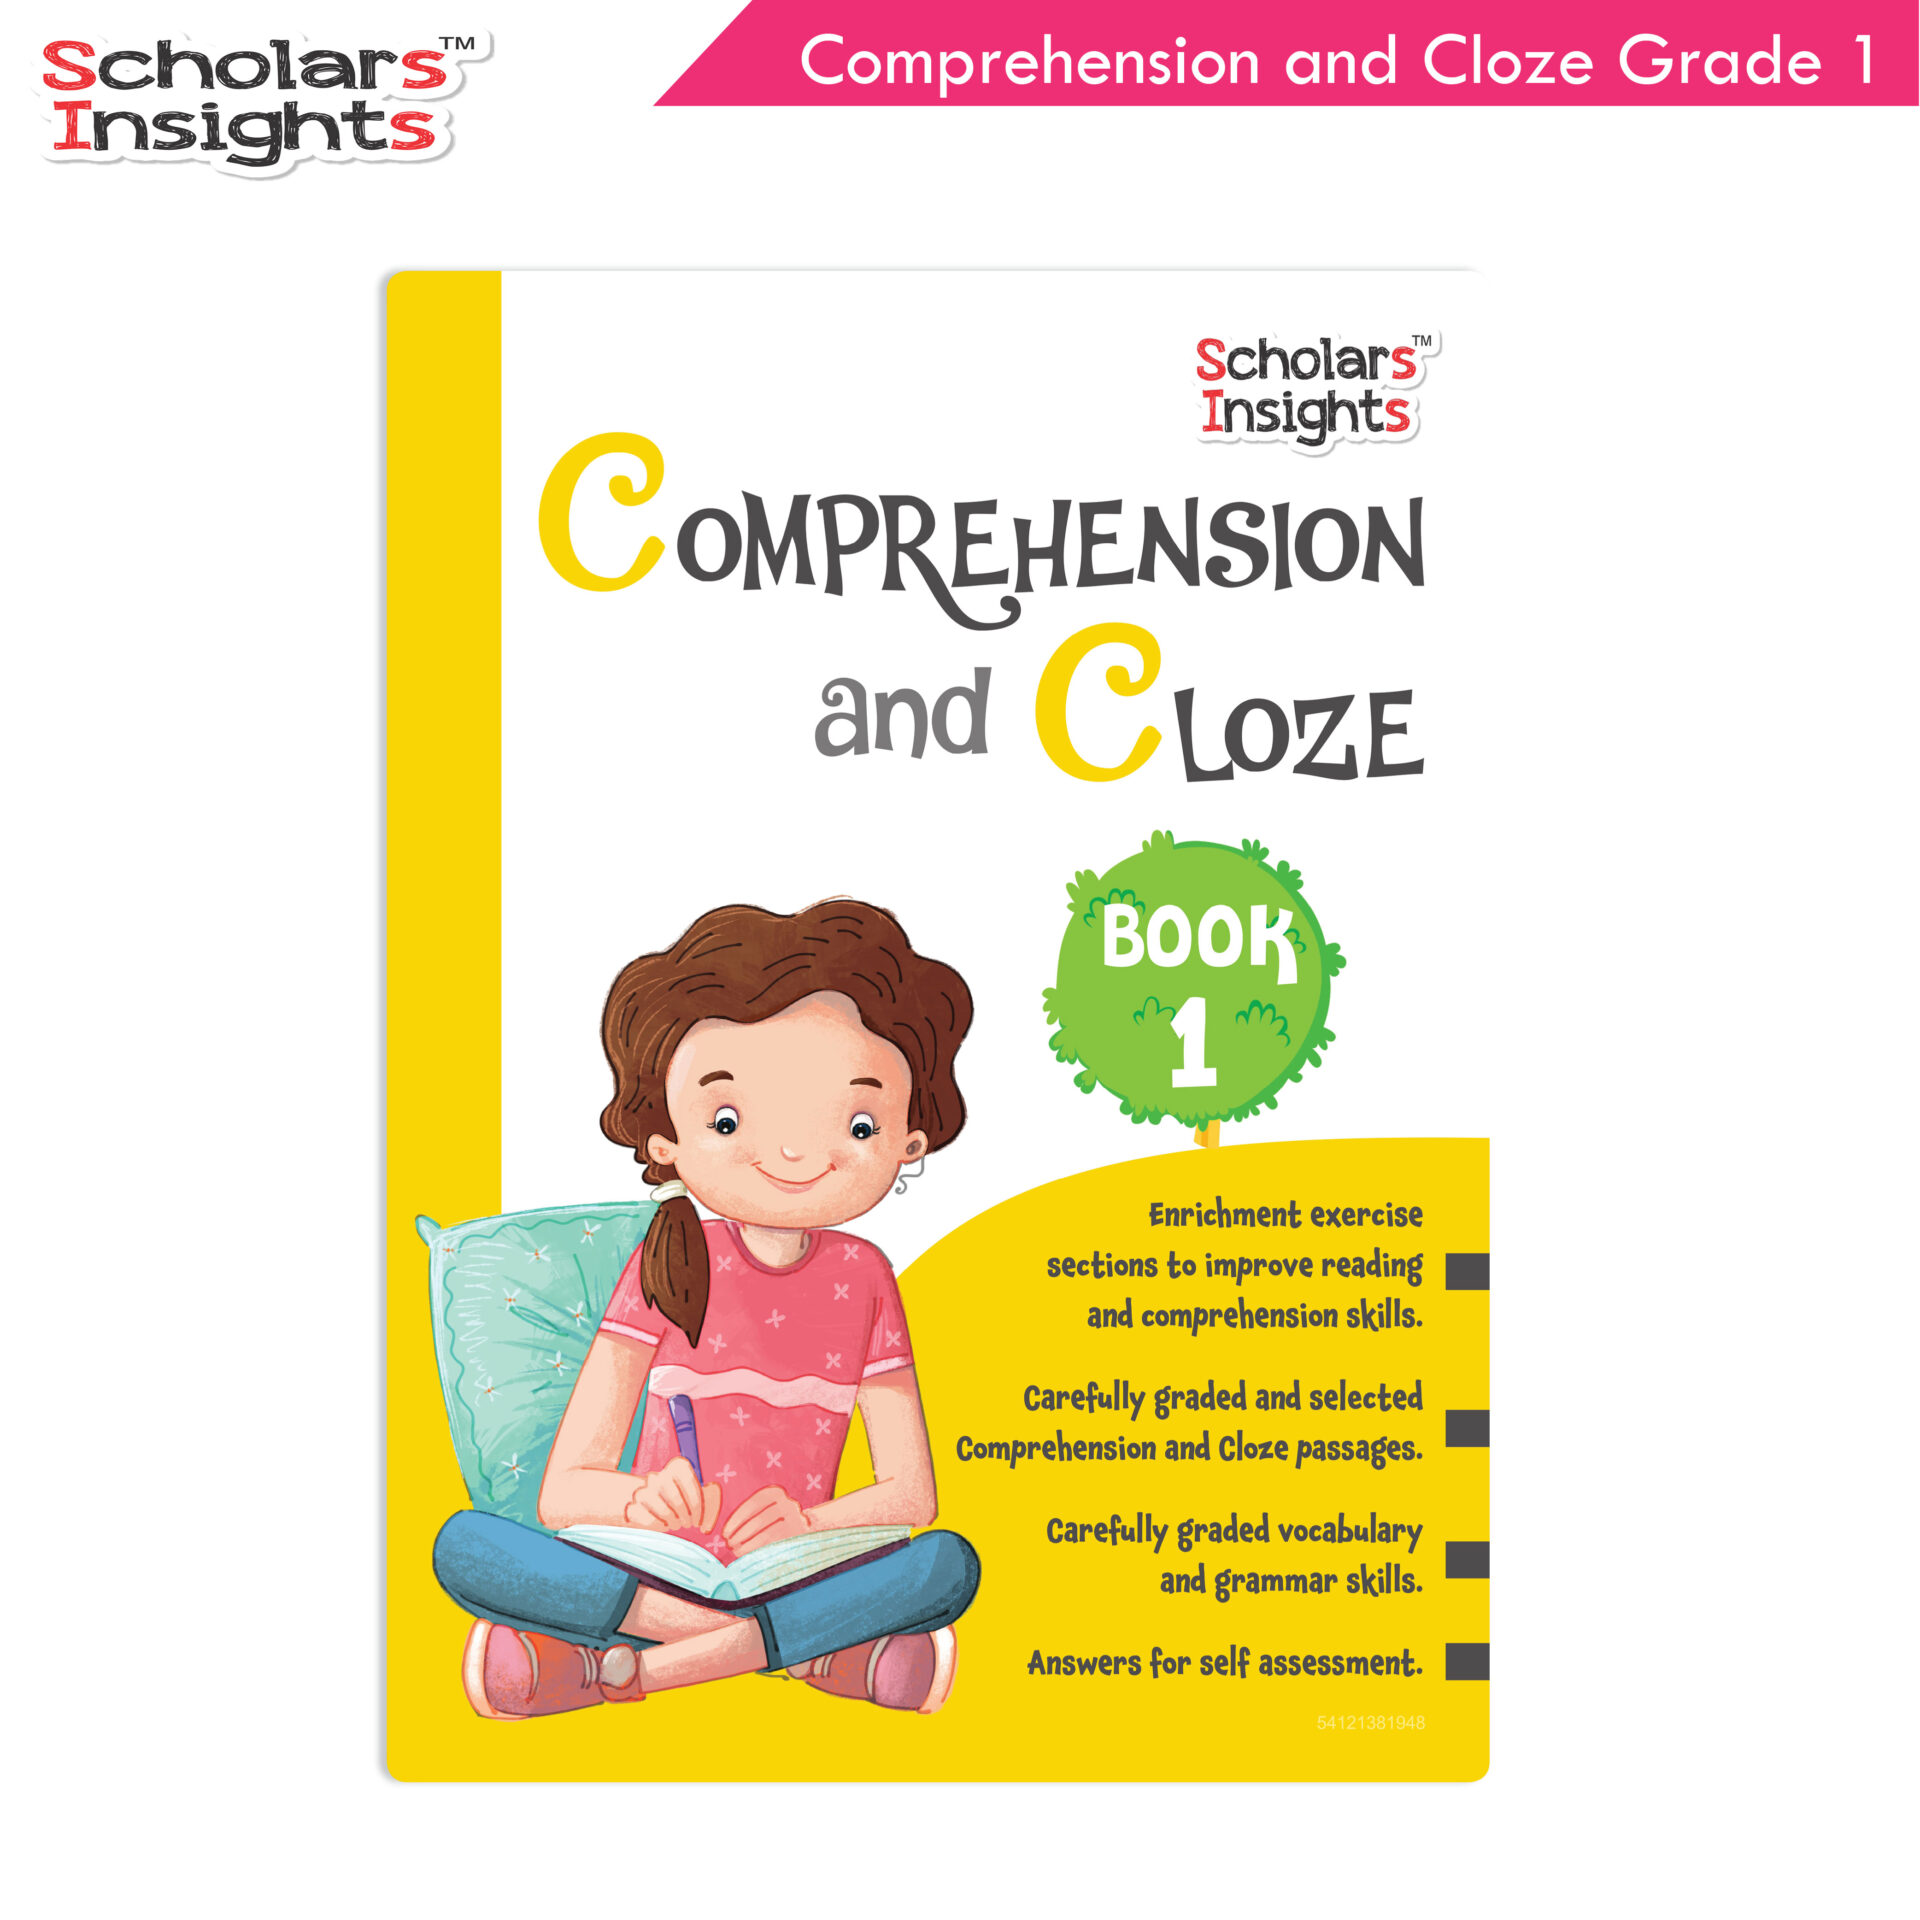 Scholars Insights Comprehension and Cloze Grade 1 1 1